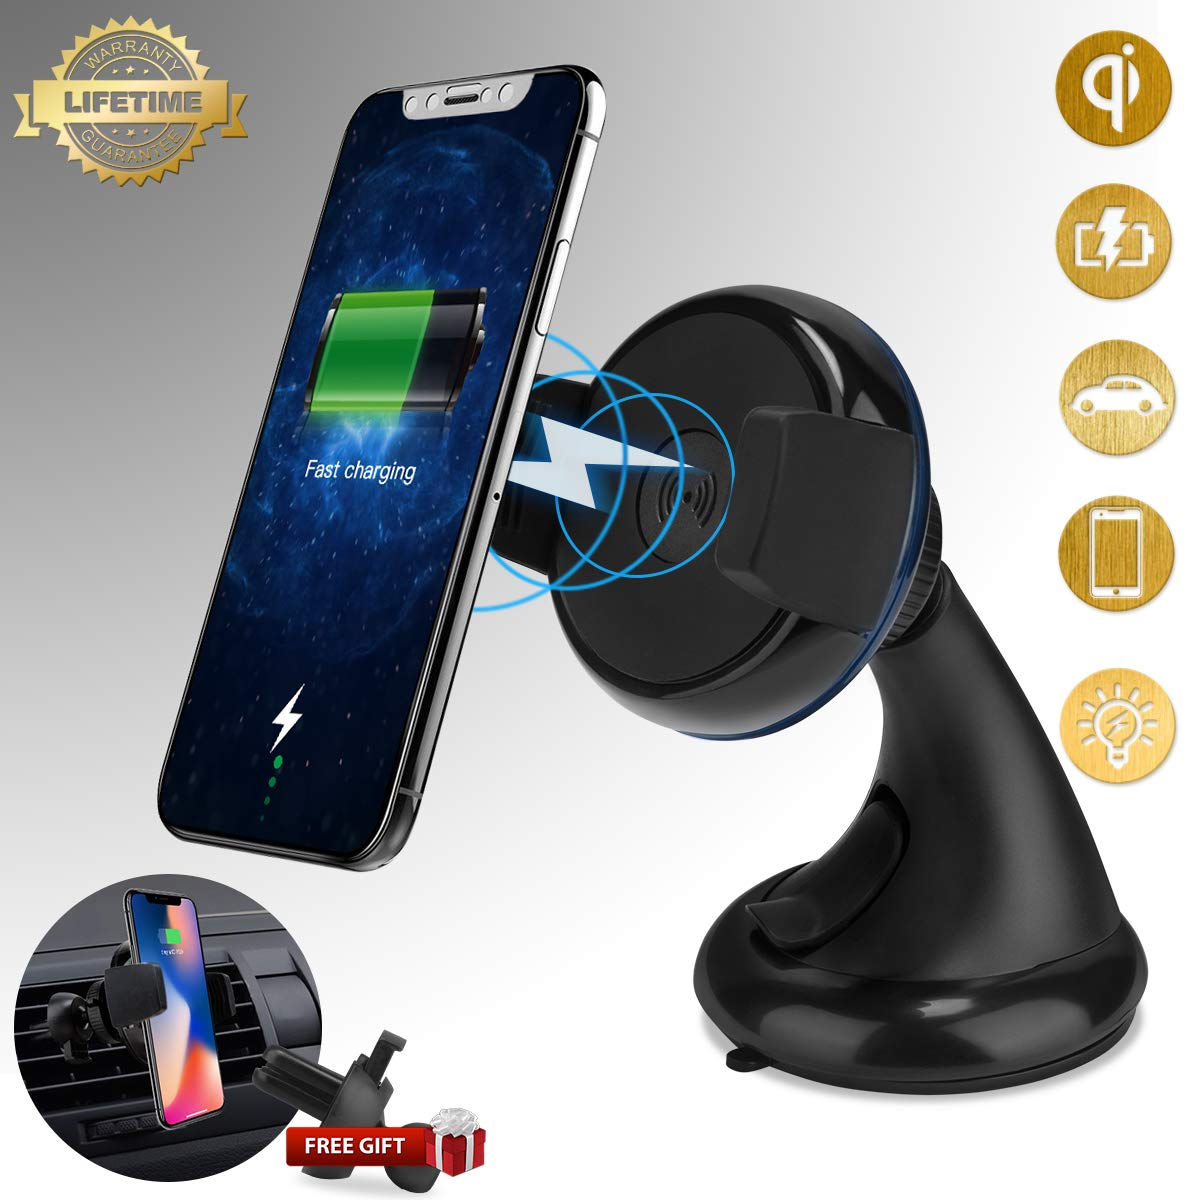 Wireless Car Charger, Adorve Car Phone Mount Holder Air Vent Phone Holder, Windshield Mount, Dual USB Port Car Fast Charger Adapter Compatible with iPhone Xs 8 Plus Samsung S9 All Qi-Enable